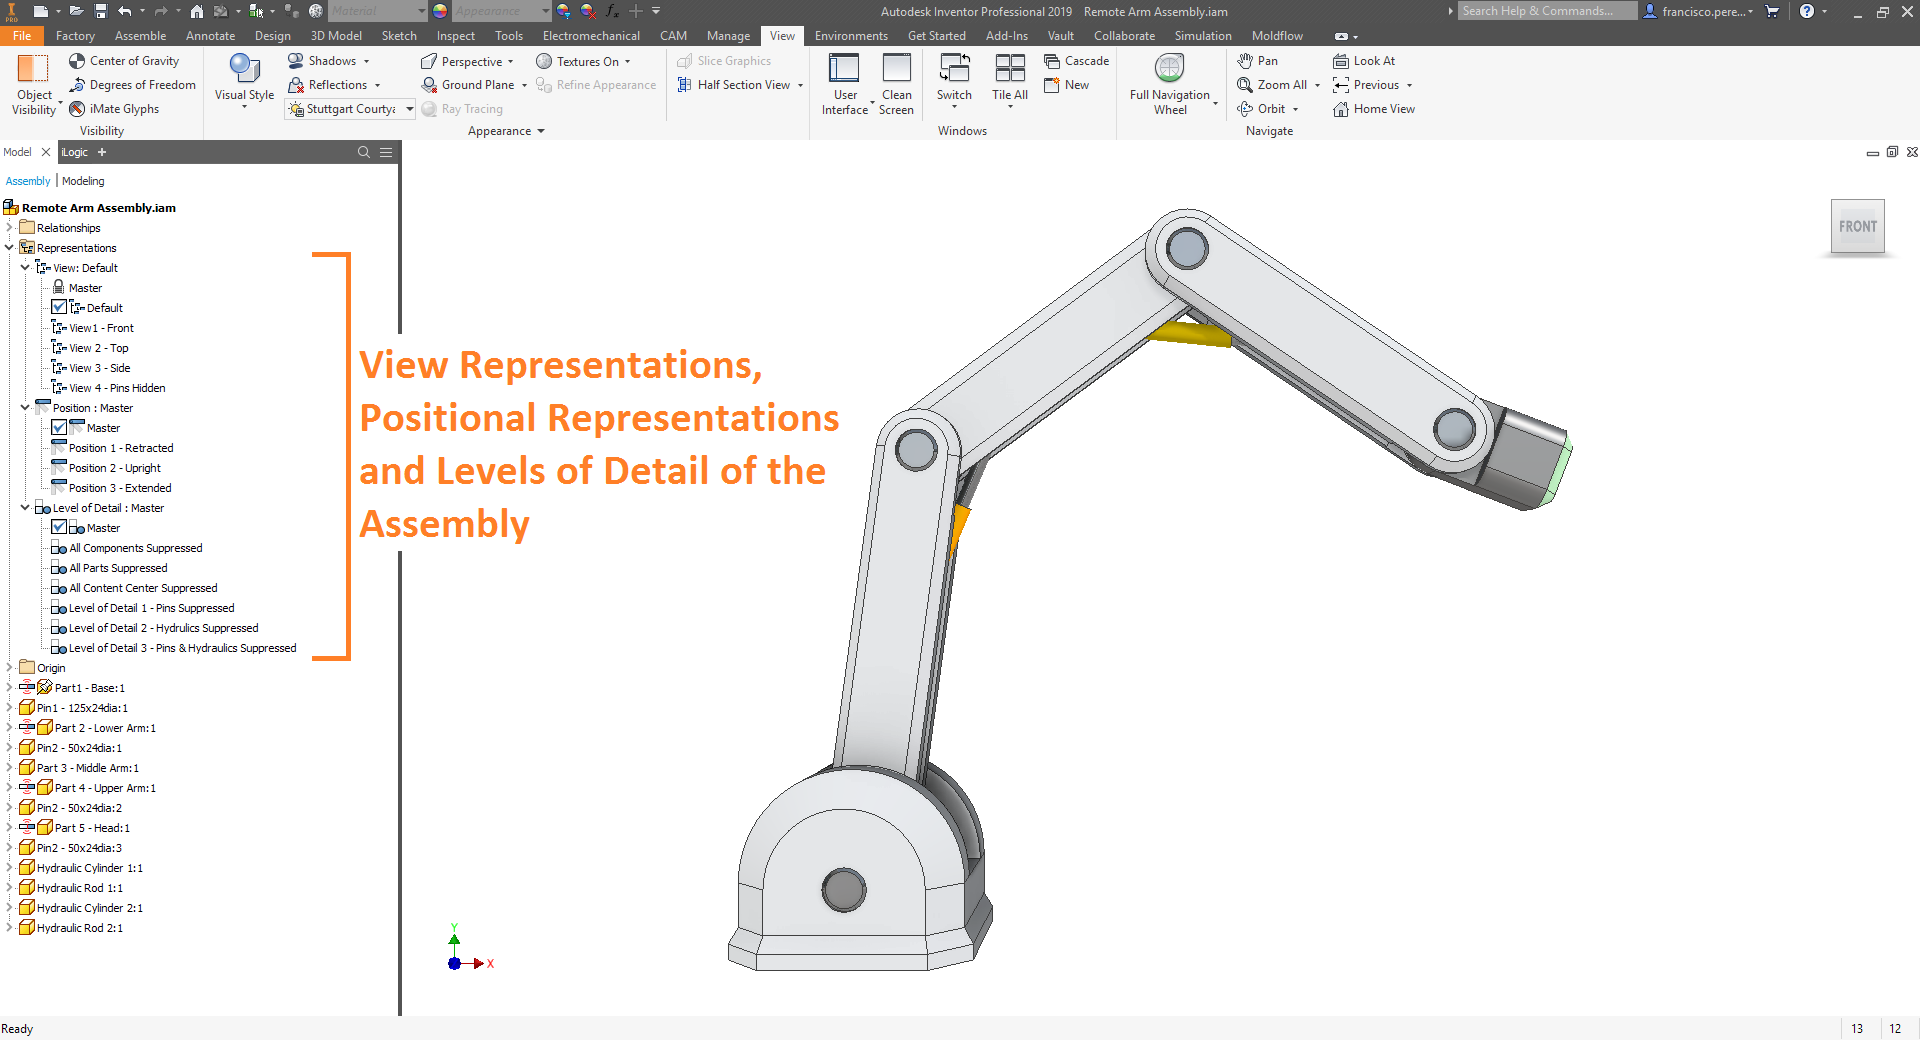 View Representations, Positional Representations and Levels